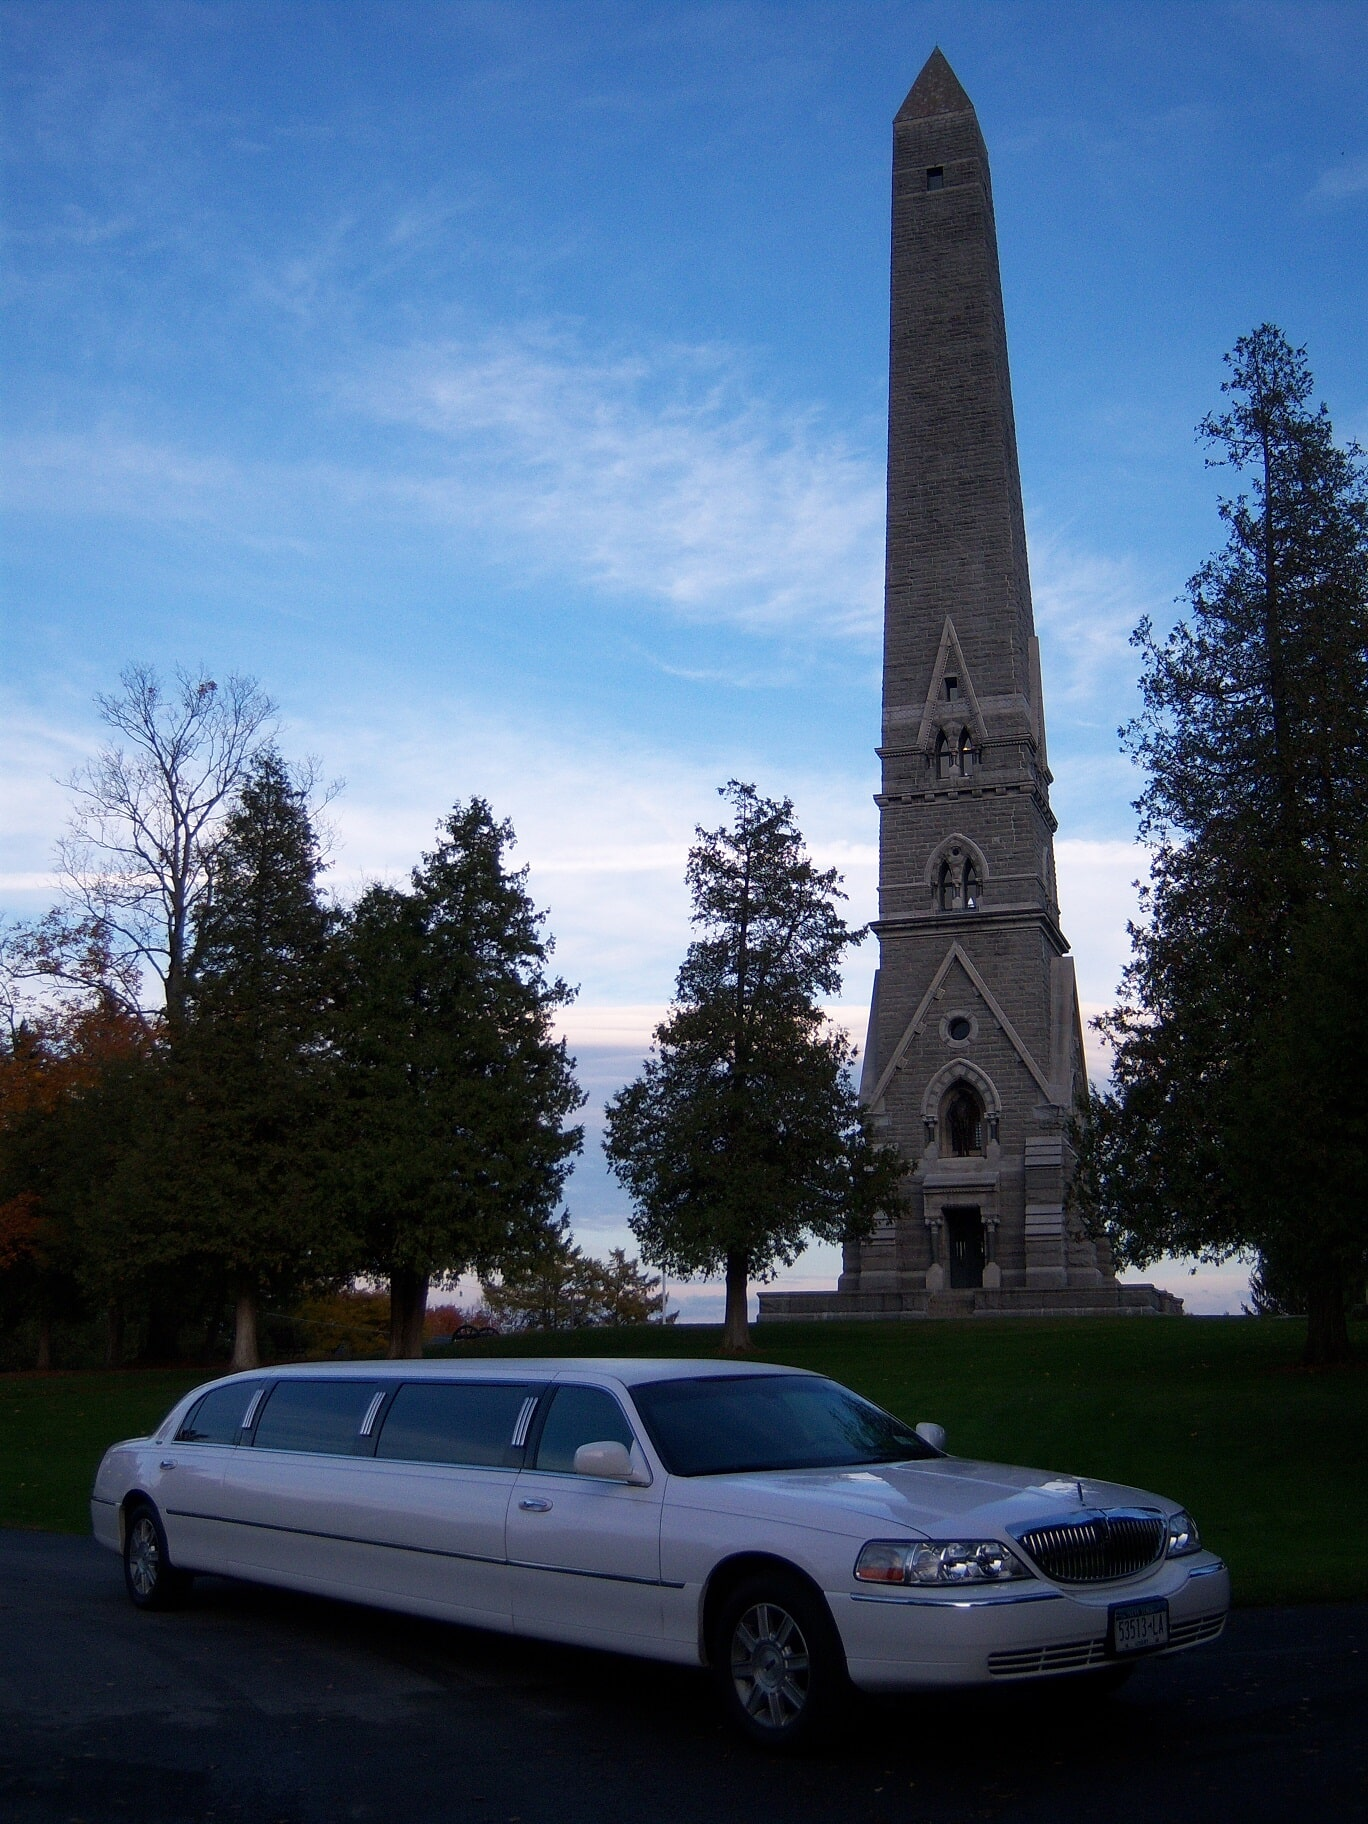 All Occasions Limo Service Inc. image 9